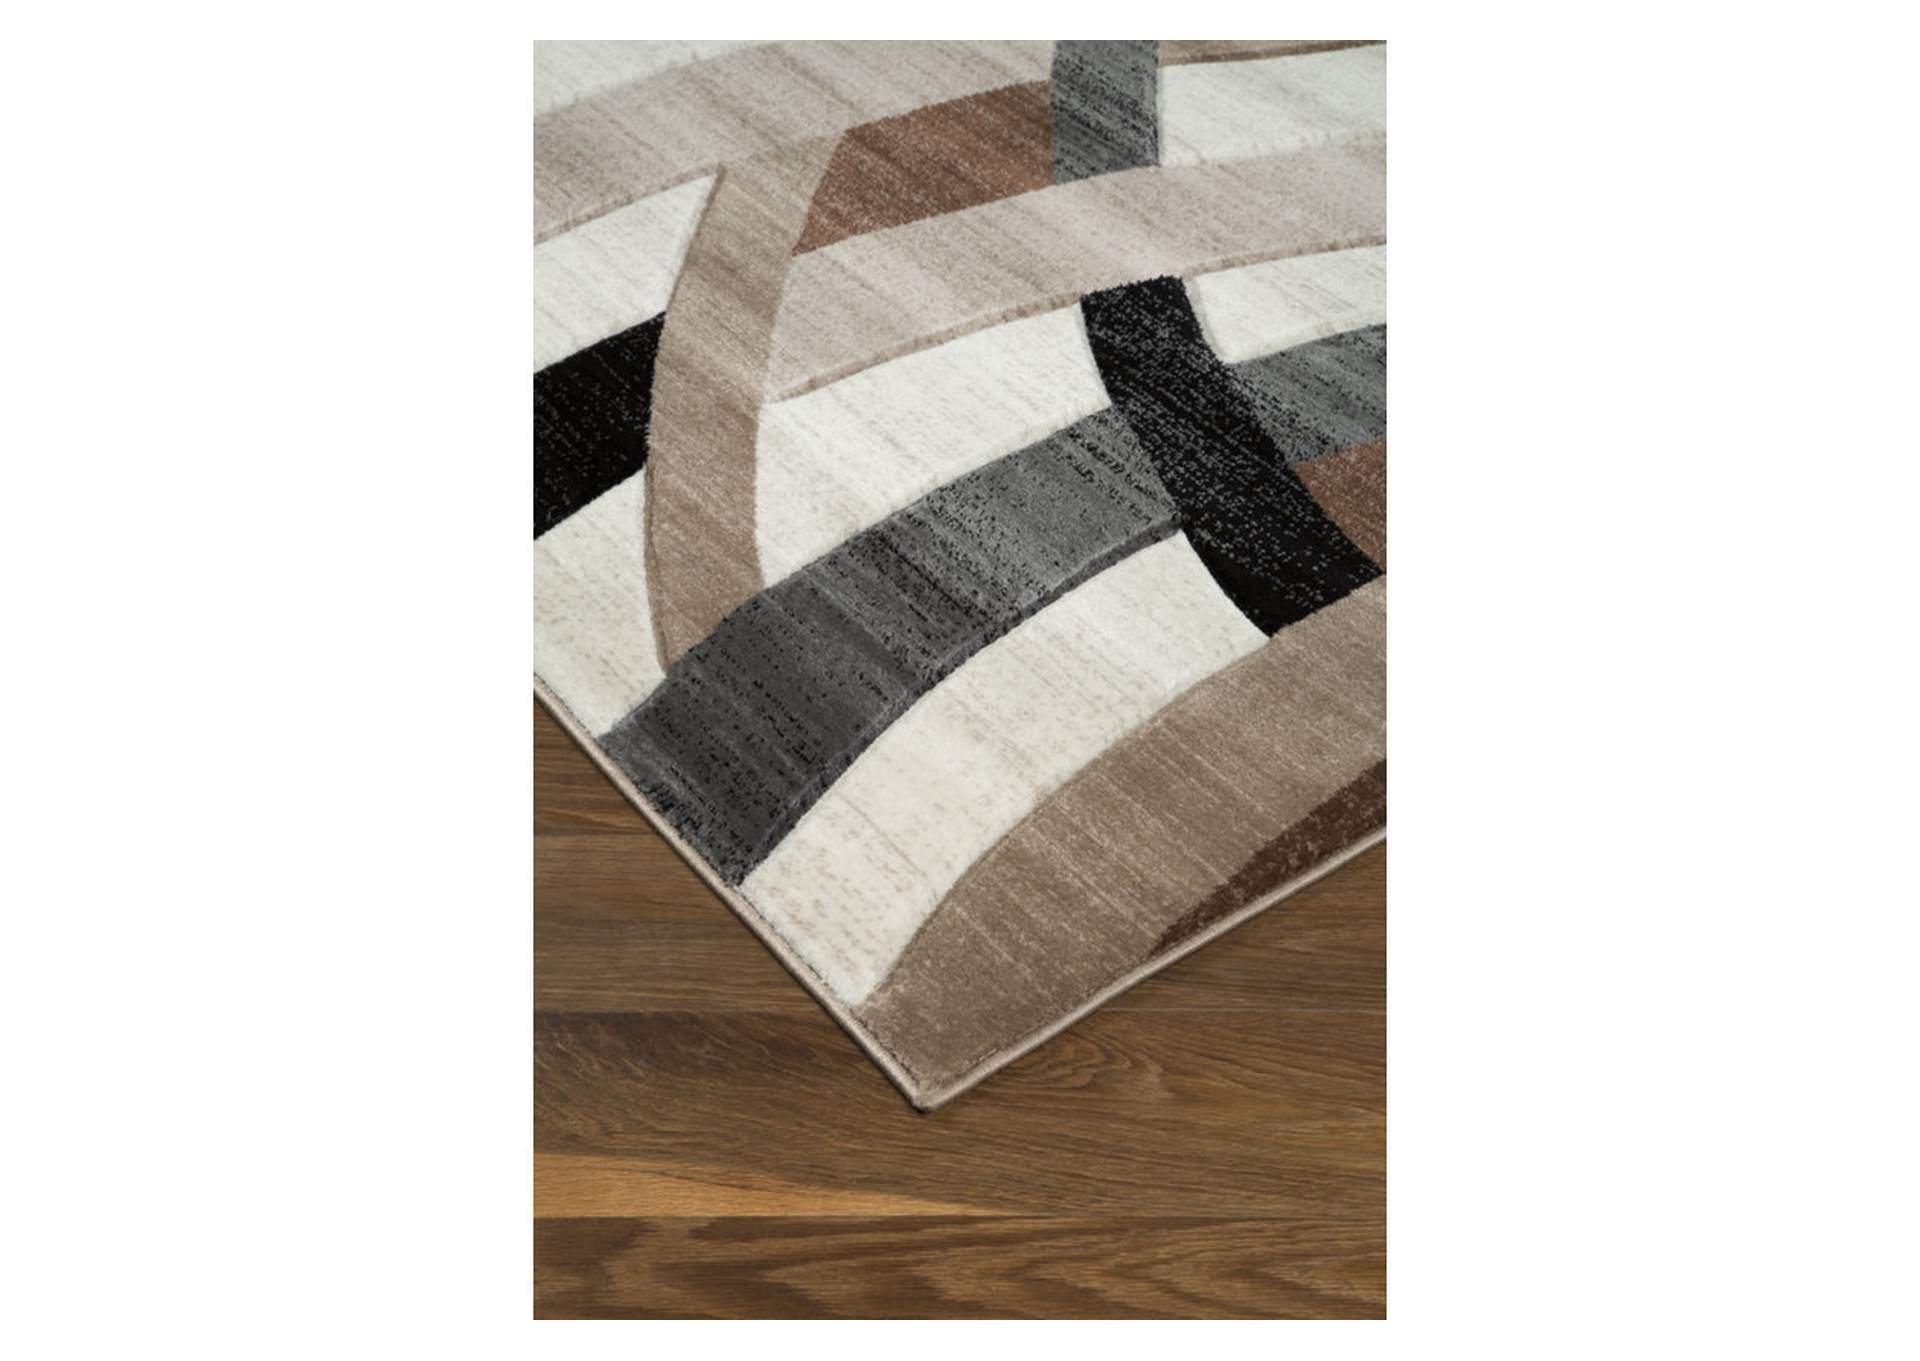 Jacinth Brown Large Rug,Direct To Consumer Express